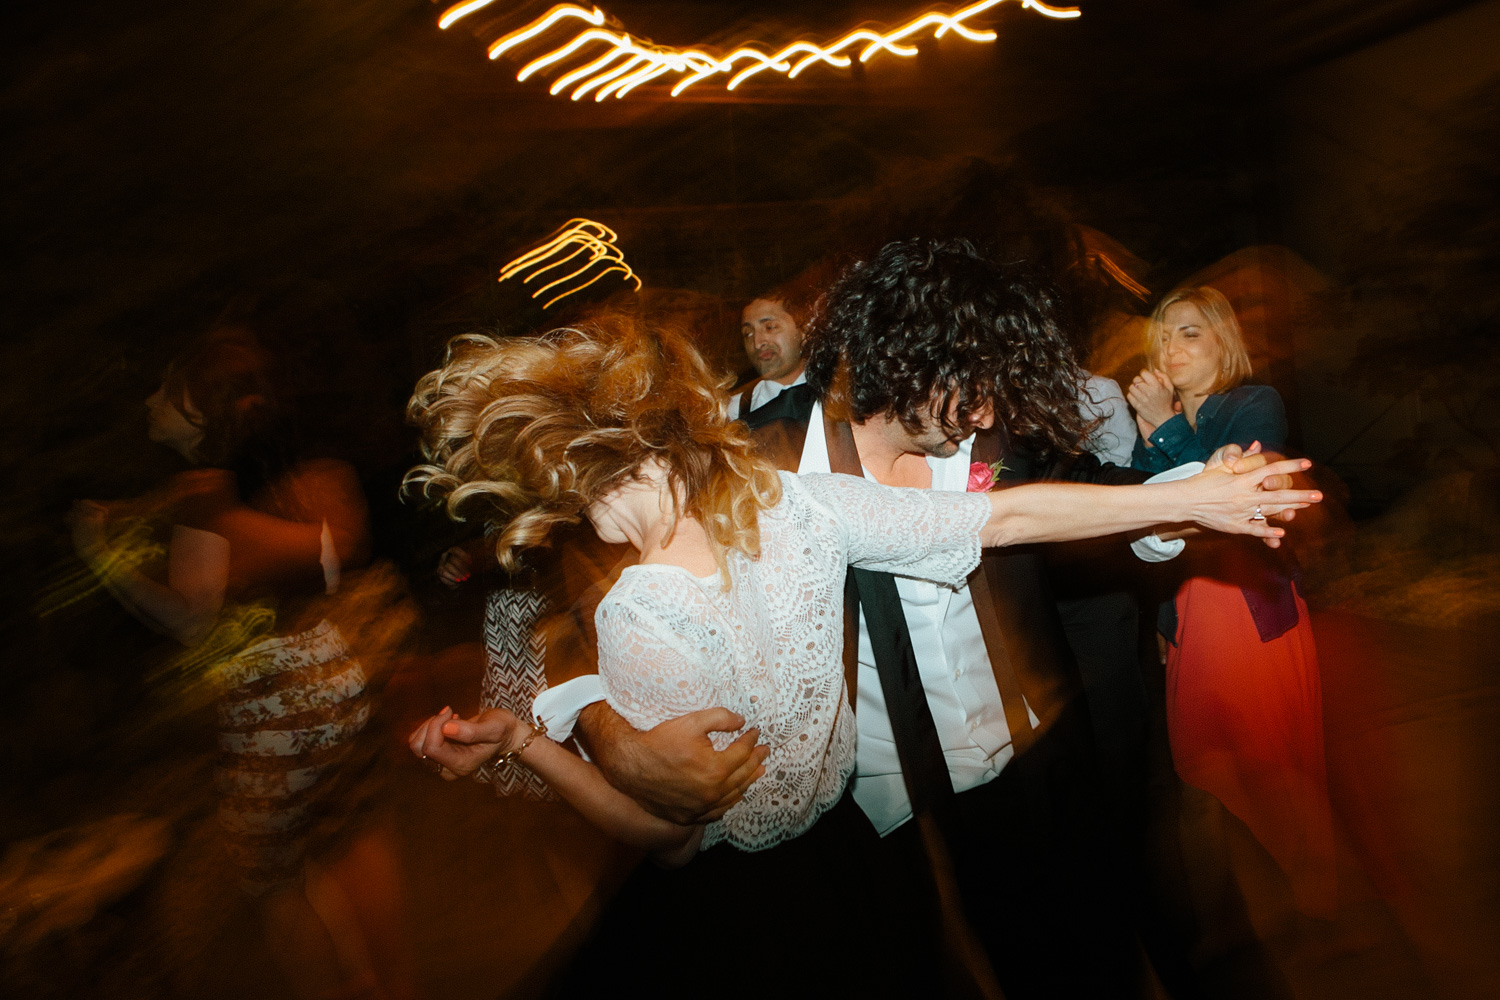 Los Angeles Wedding Photographer, The Elysian  - The Gathering Season x weareleoandkat 097.JPG